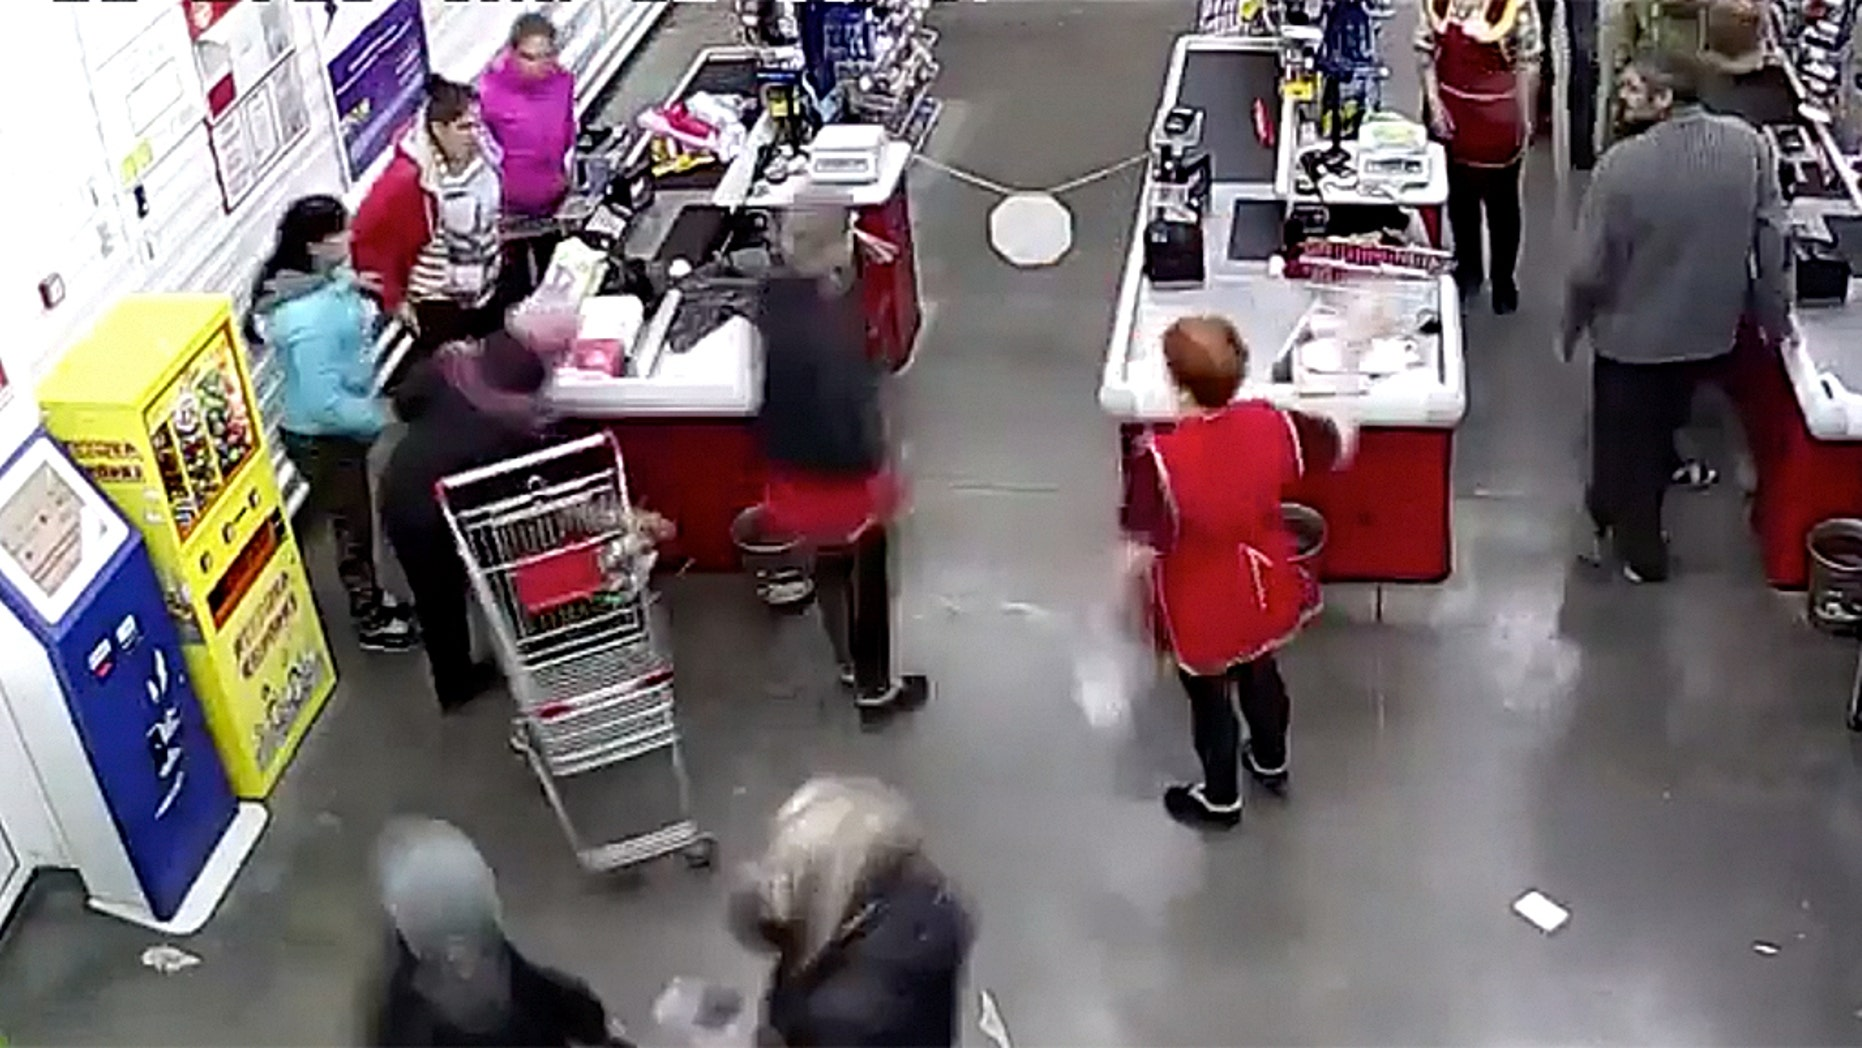 The mother, pictured left at the checkout counter in a red coat, told her cashier that she couldn't wait any longer and that her baby was coming any minute.